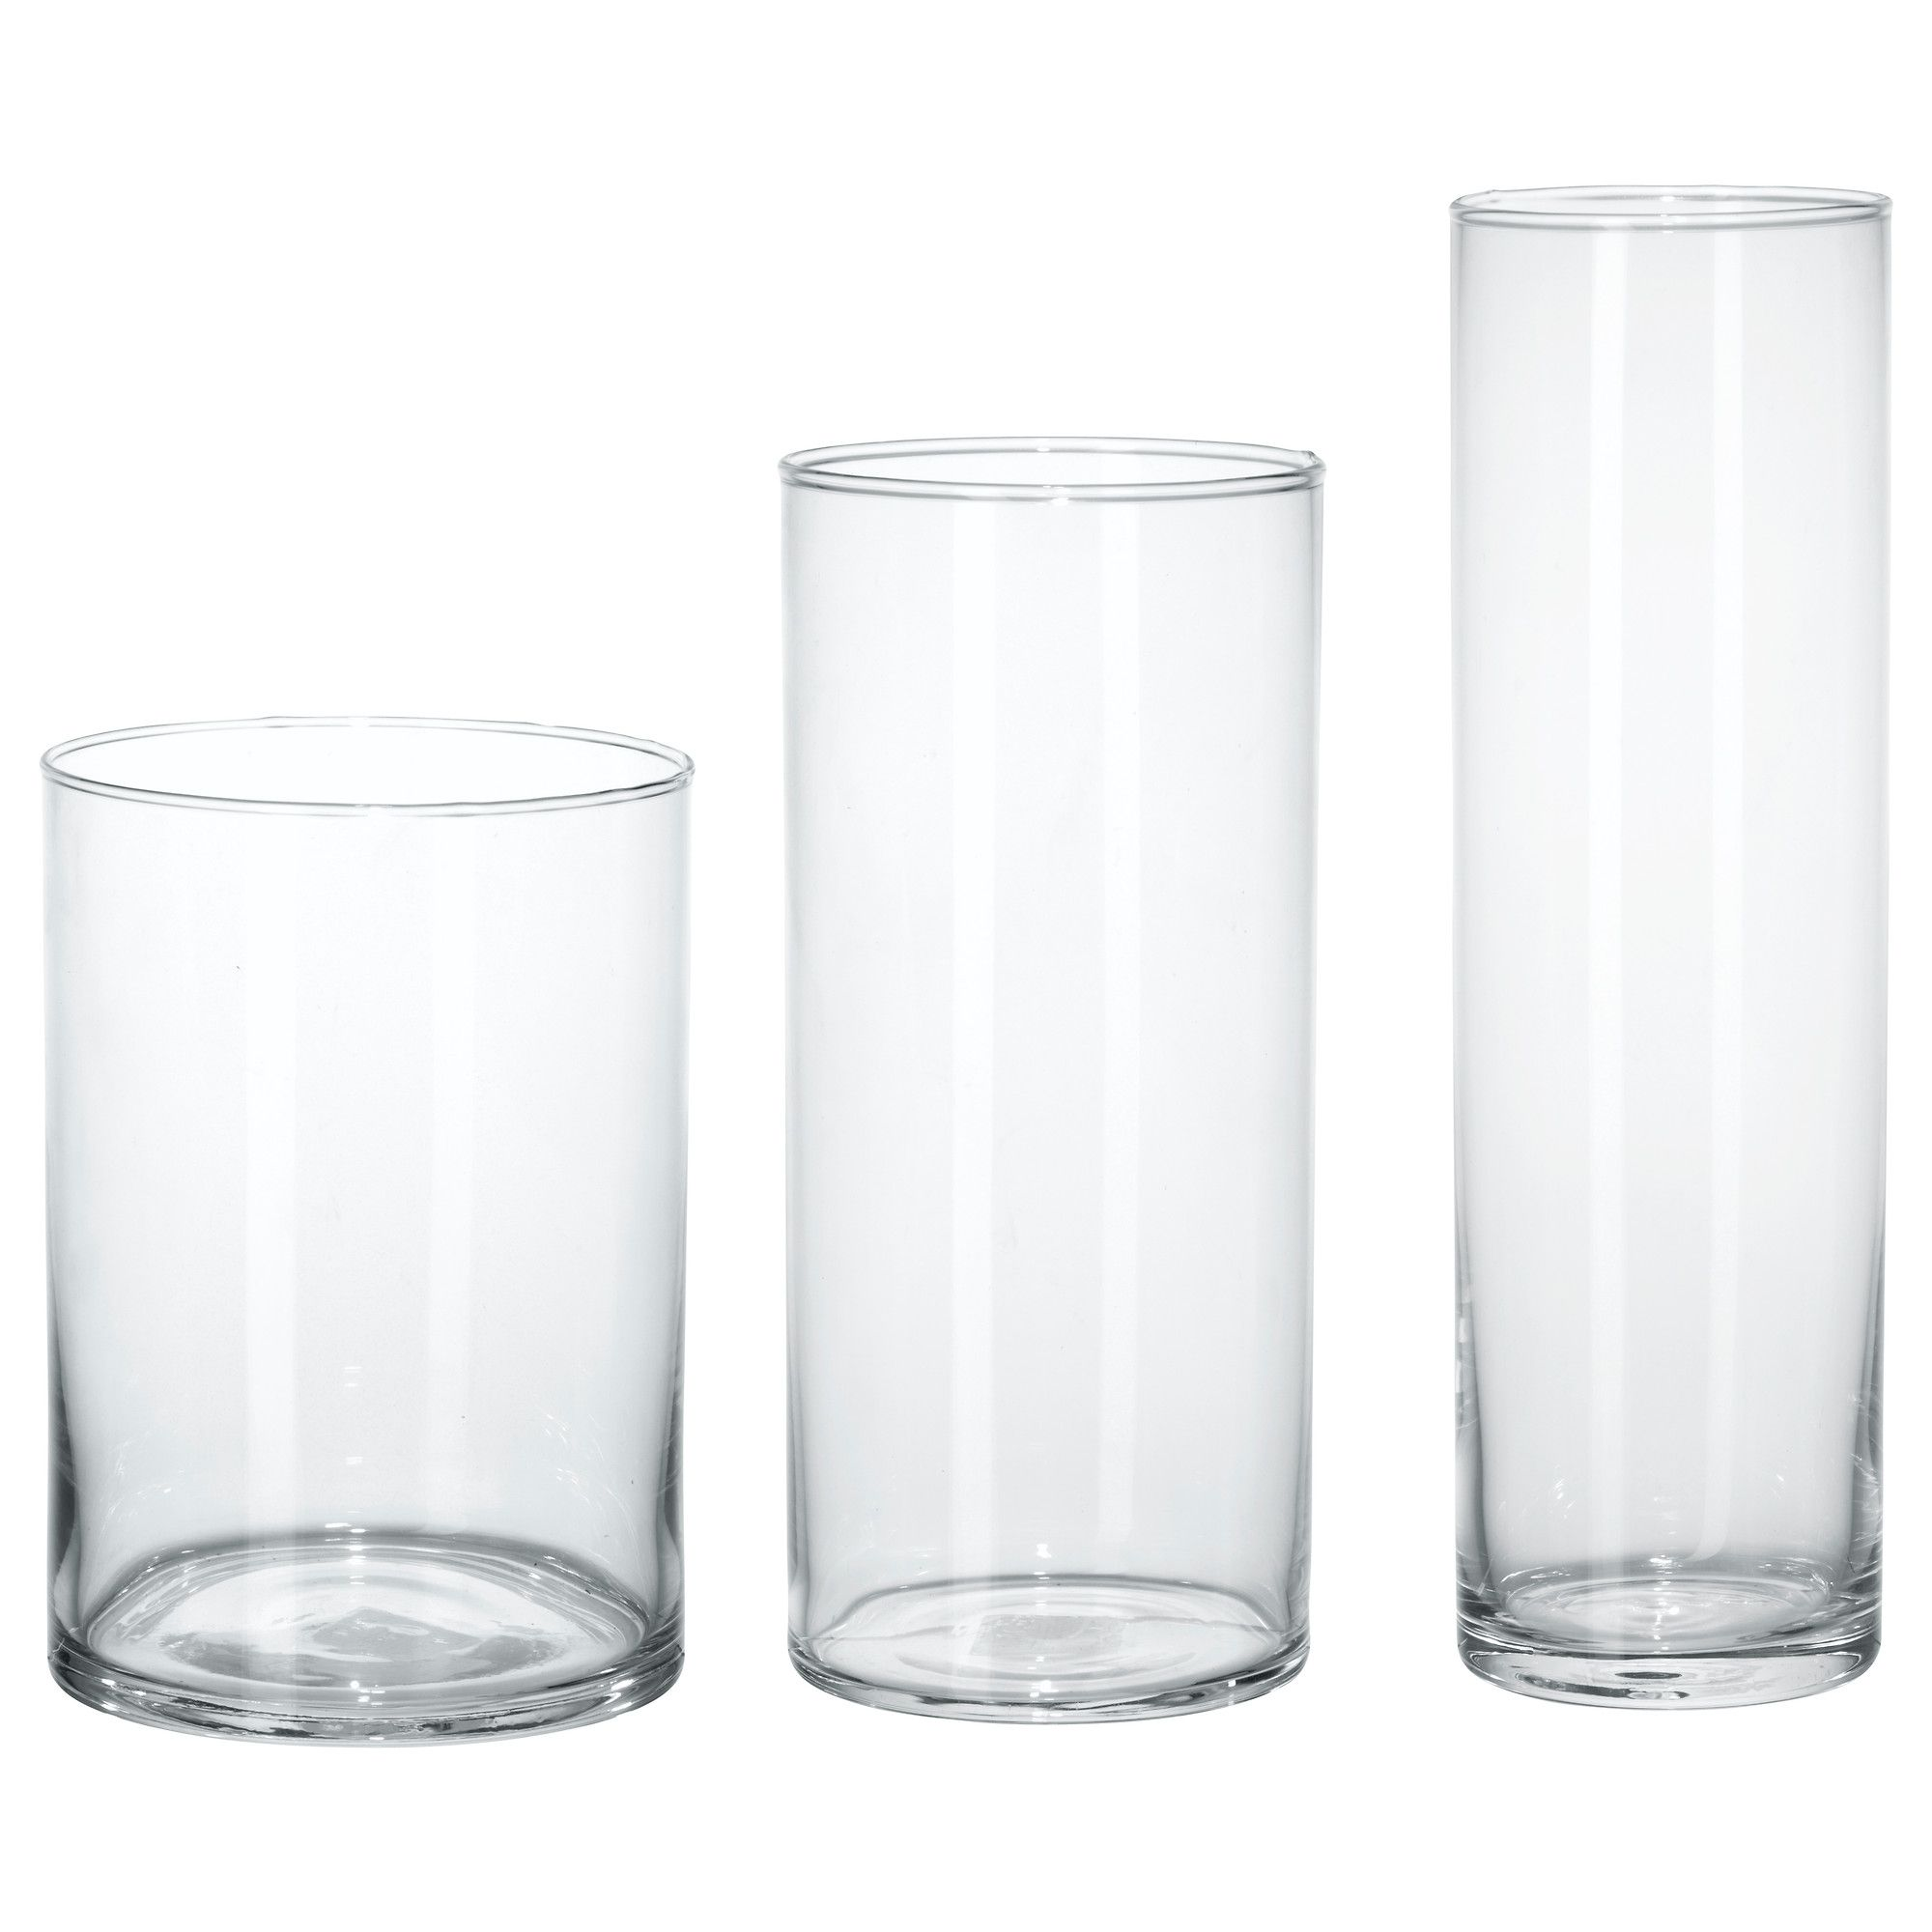 cylinder vase lot de 3 verre transparent wedding fourniture diy et buffet france. Black Bedroom Furniture Sets. Home Design Ideas